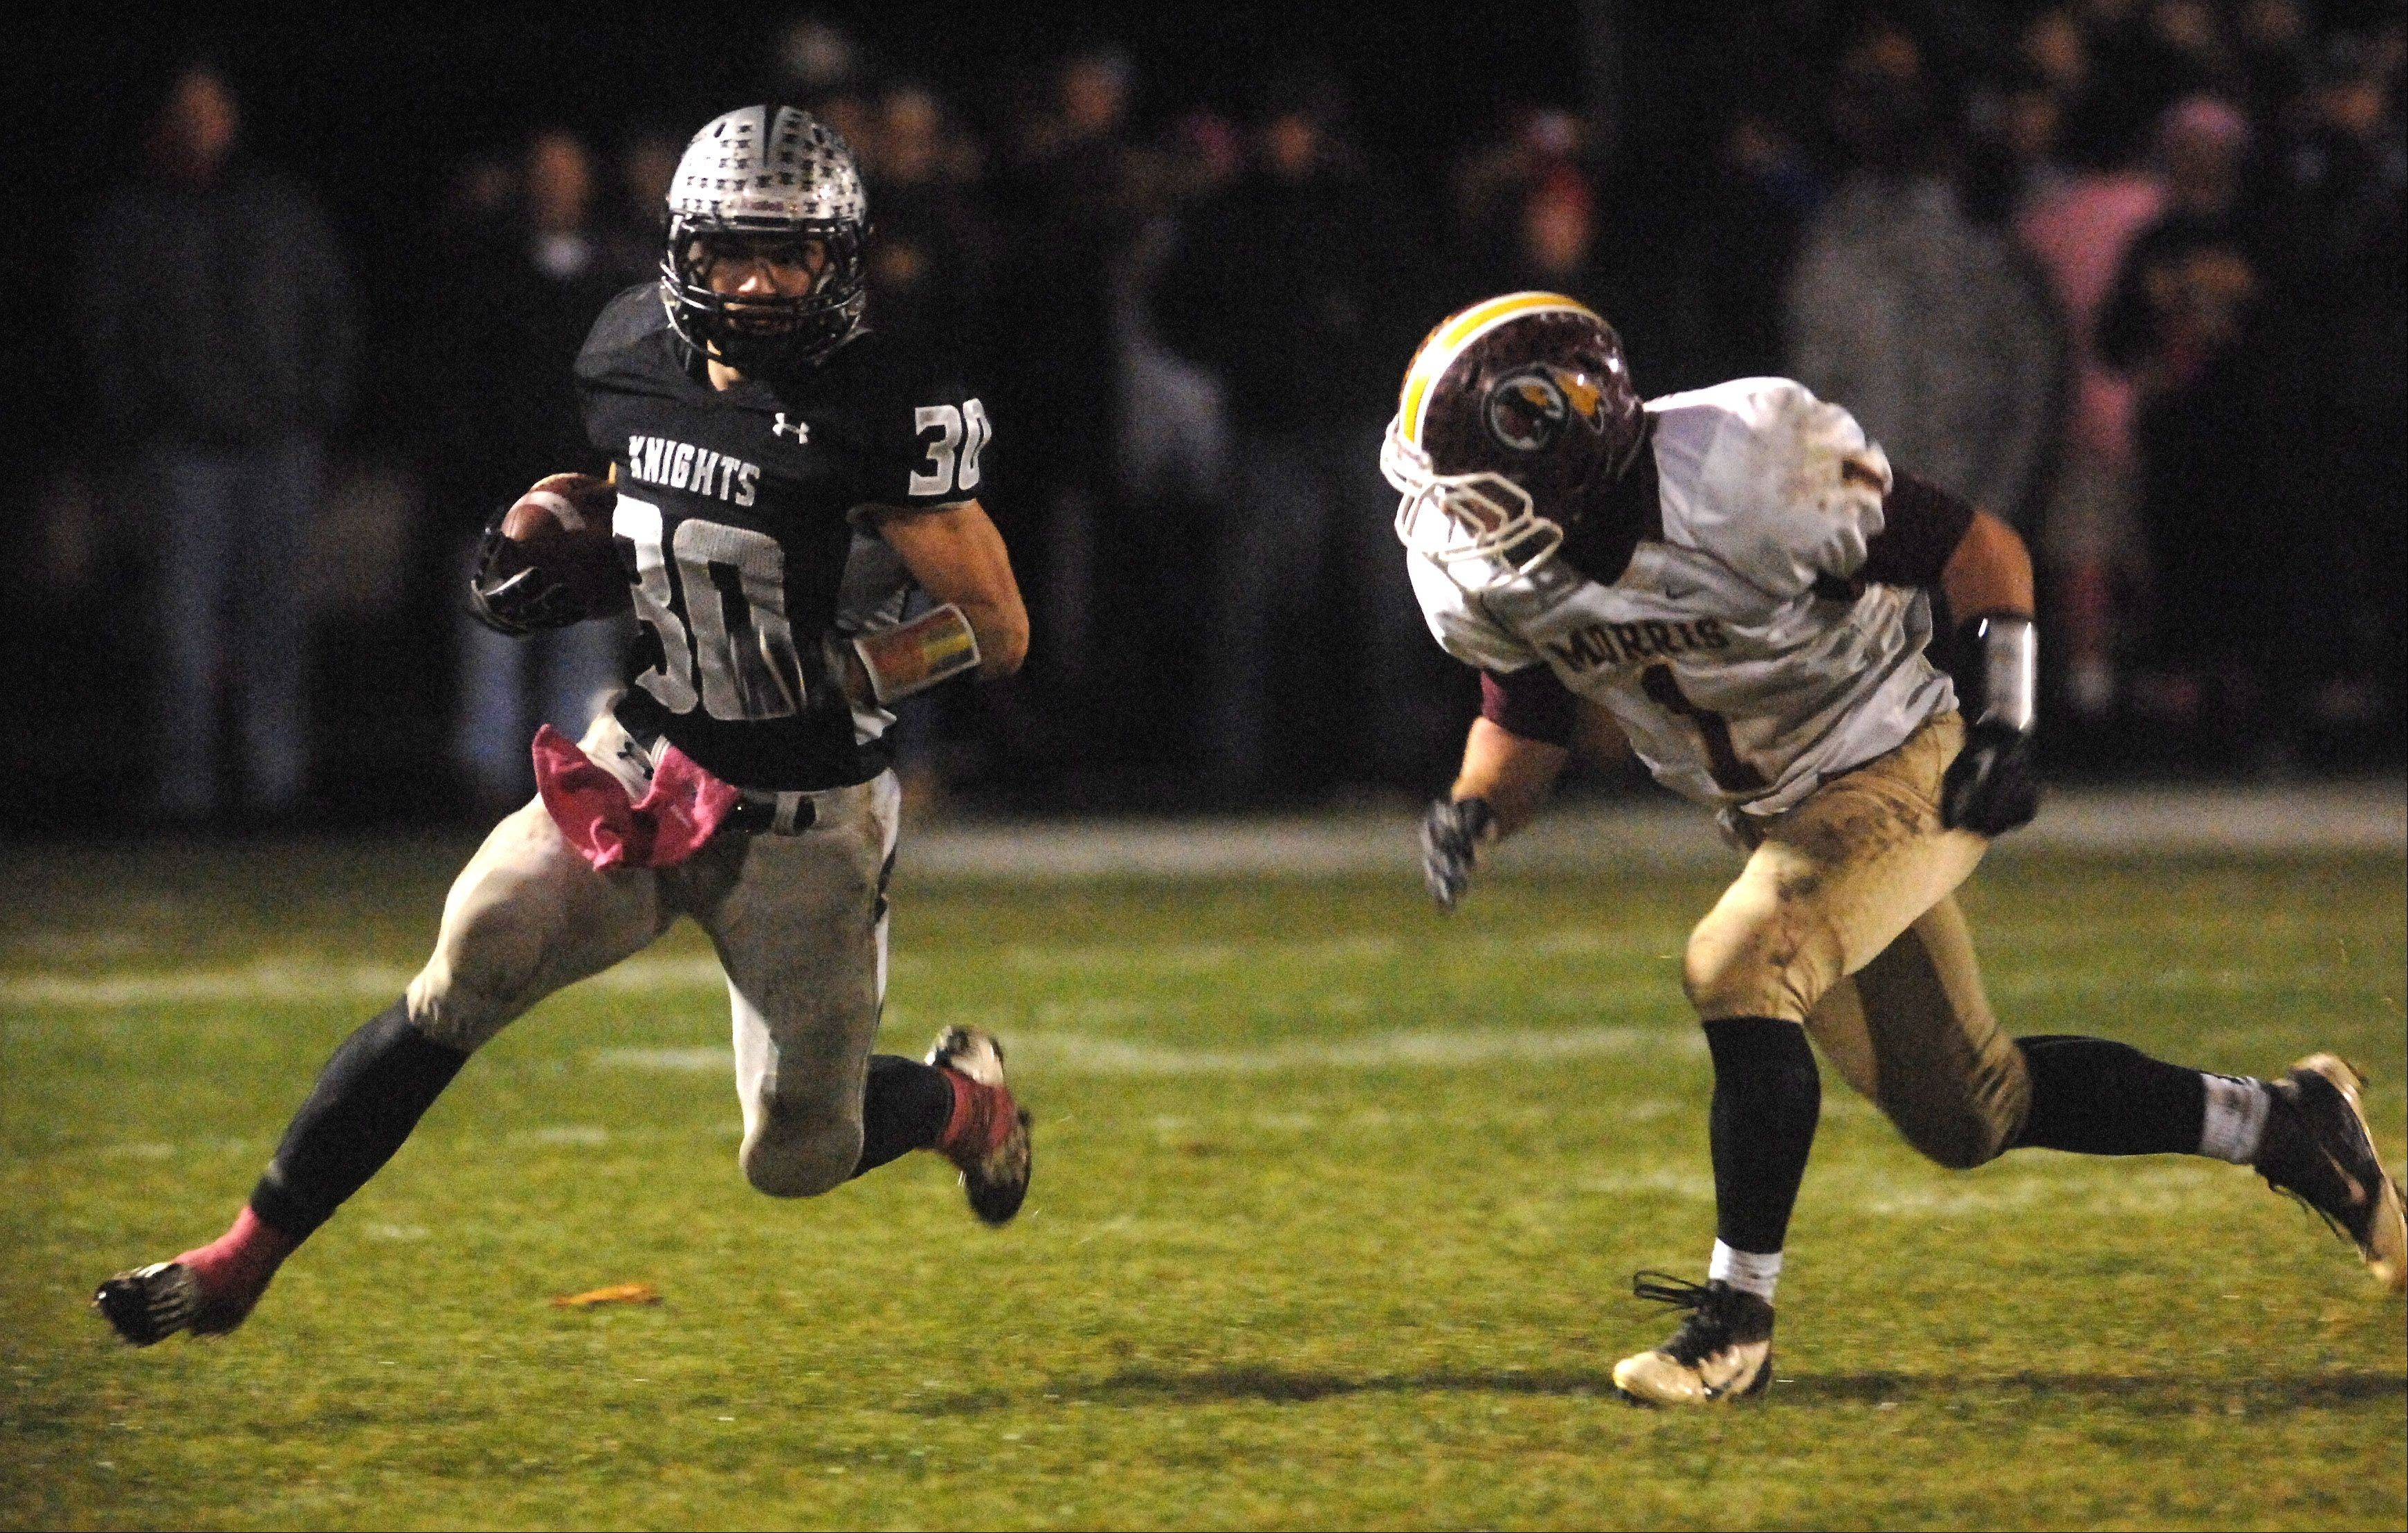 Kaneland's Jesse Balluff picks up a big gain as he gets around Morris' Jake Hogan.